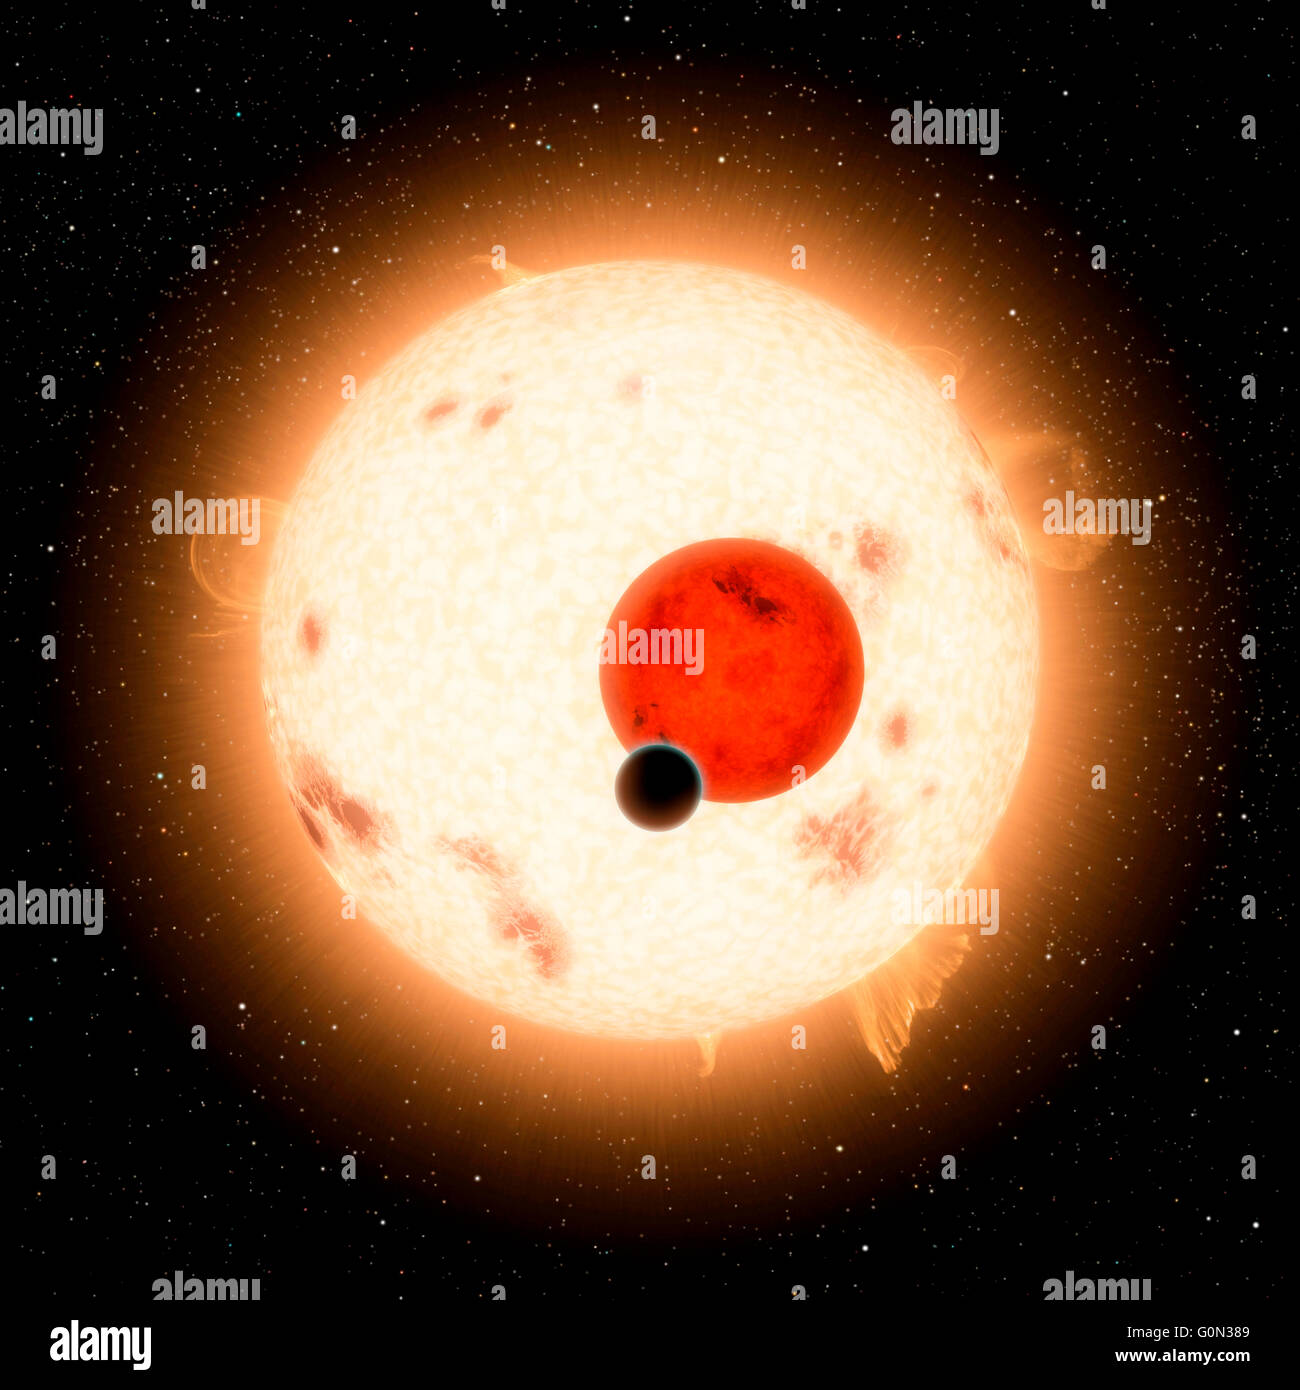 View of sun in outer space in a star field. Elements of this image furnished by NASA - Stock Image